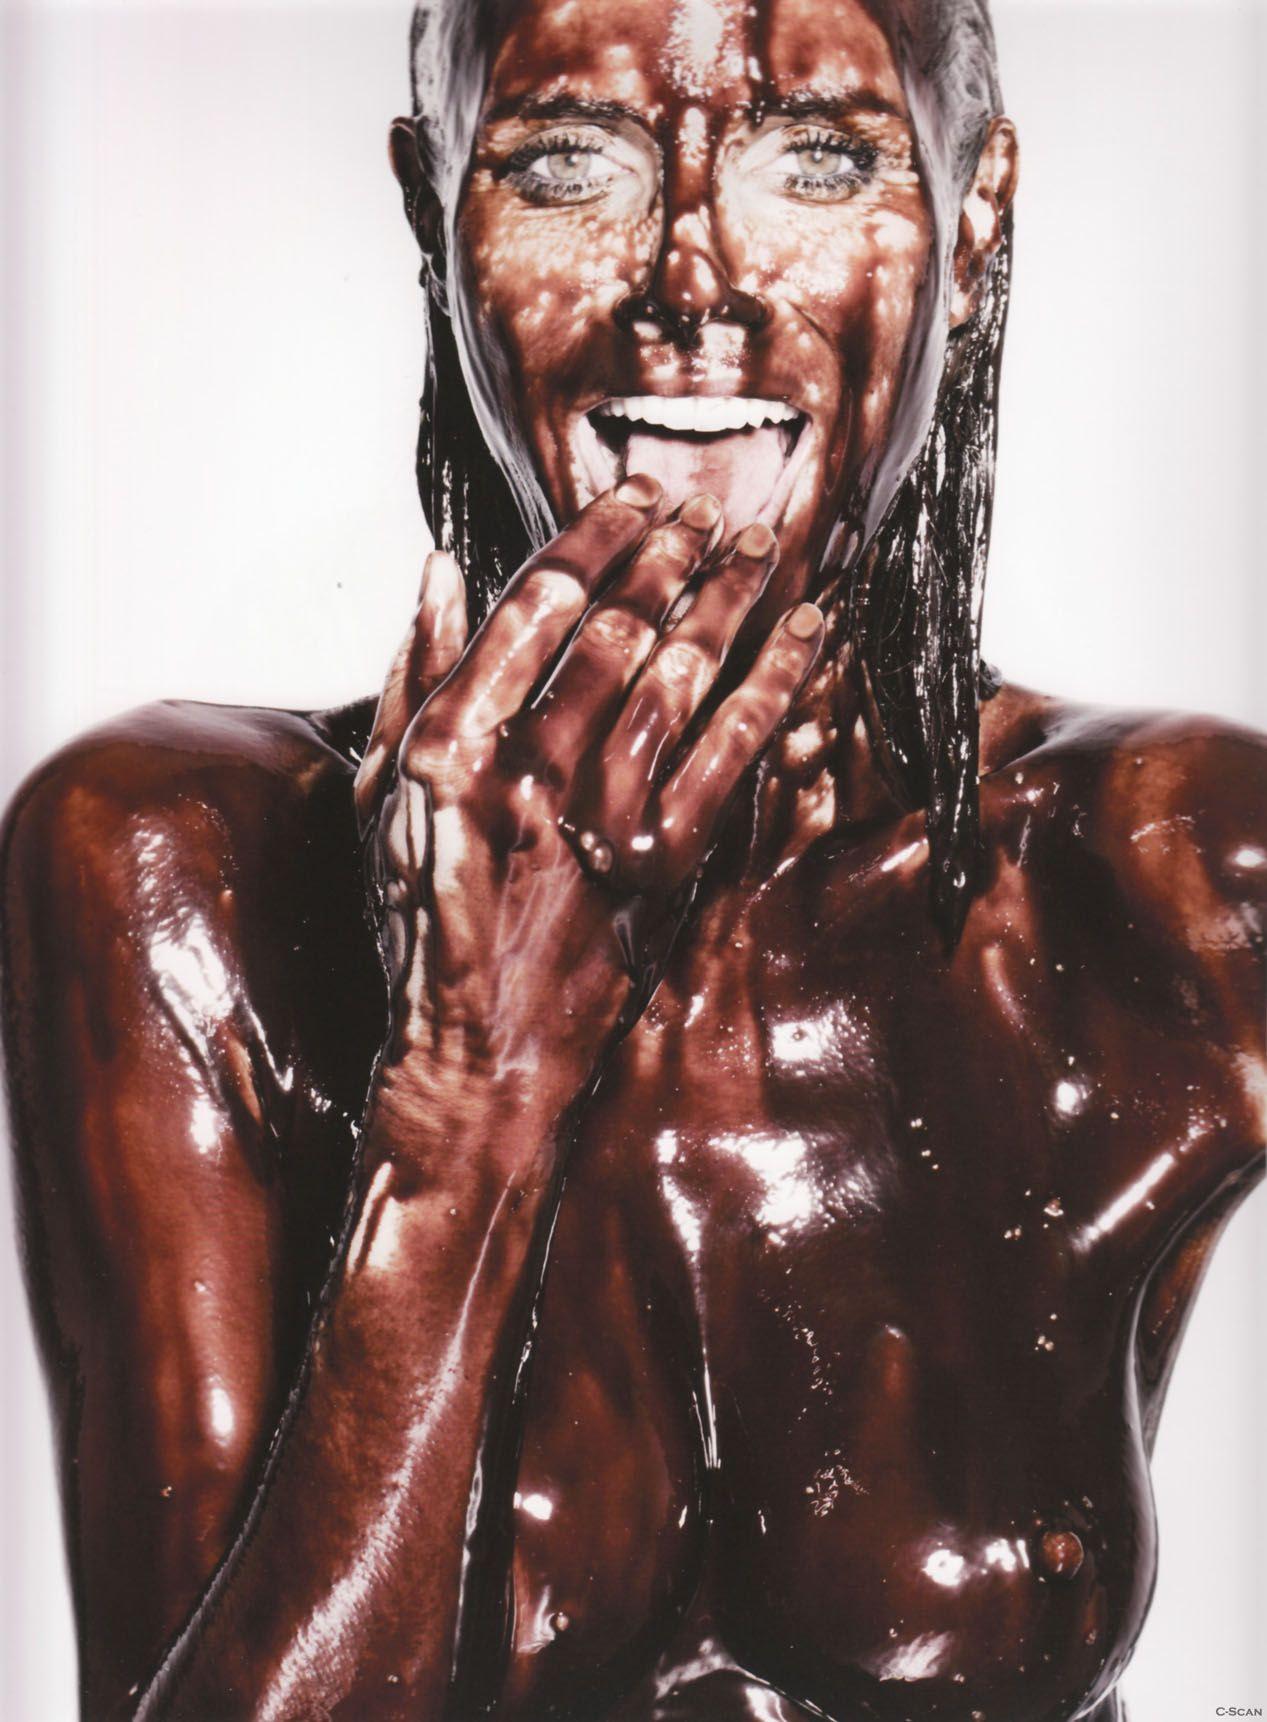 Girls naked in chocolate